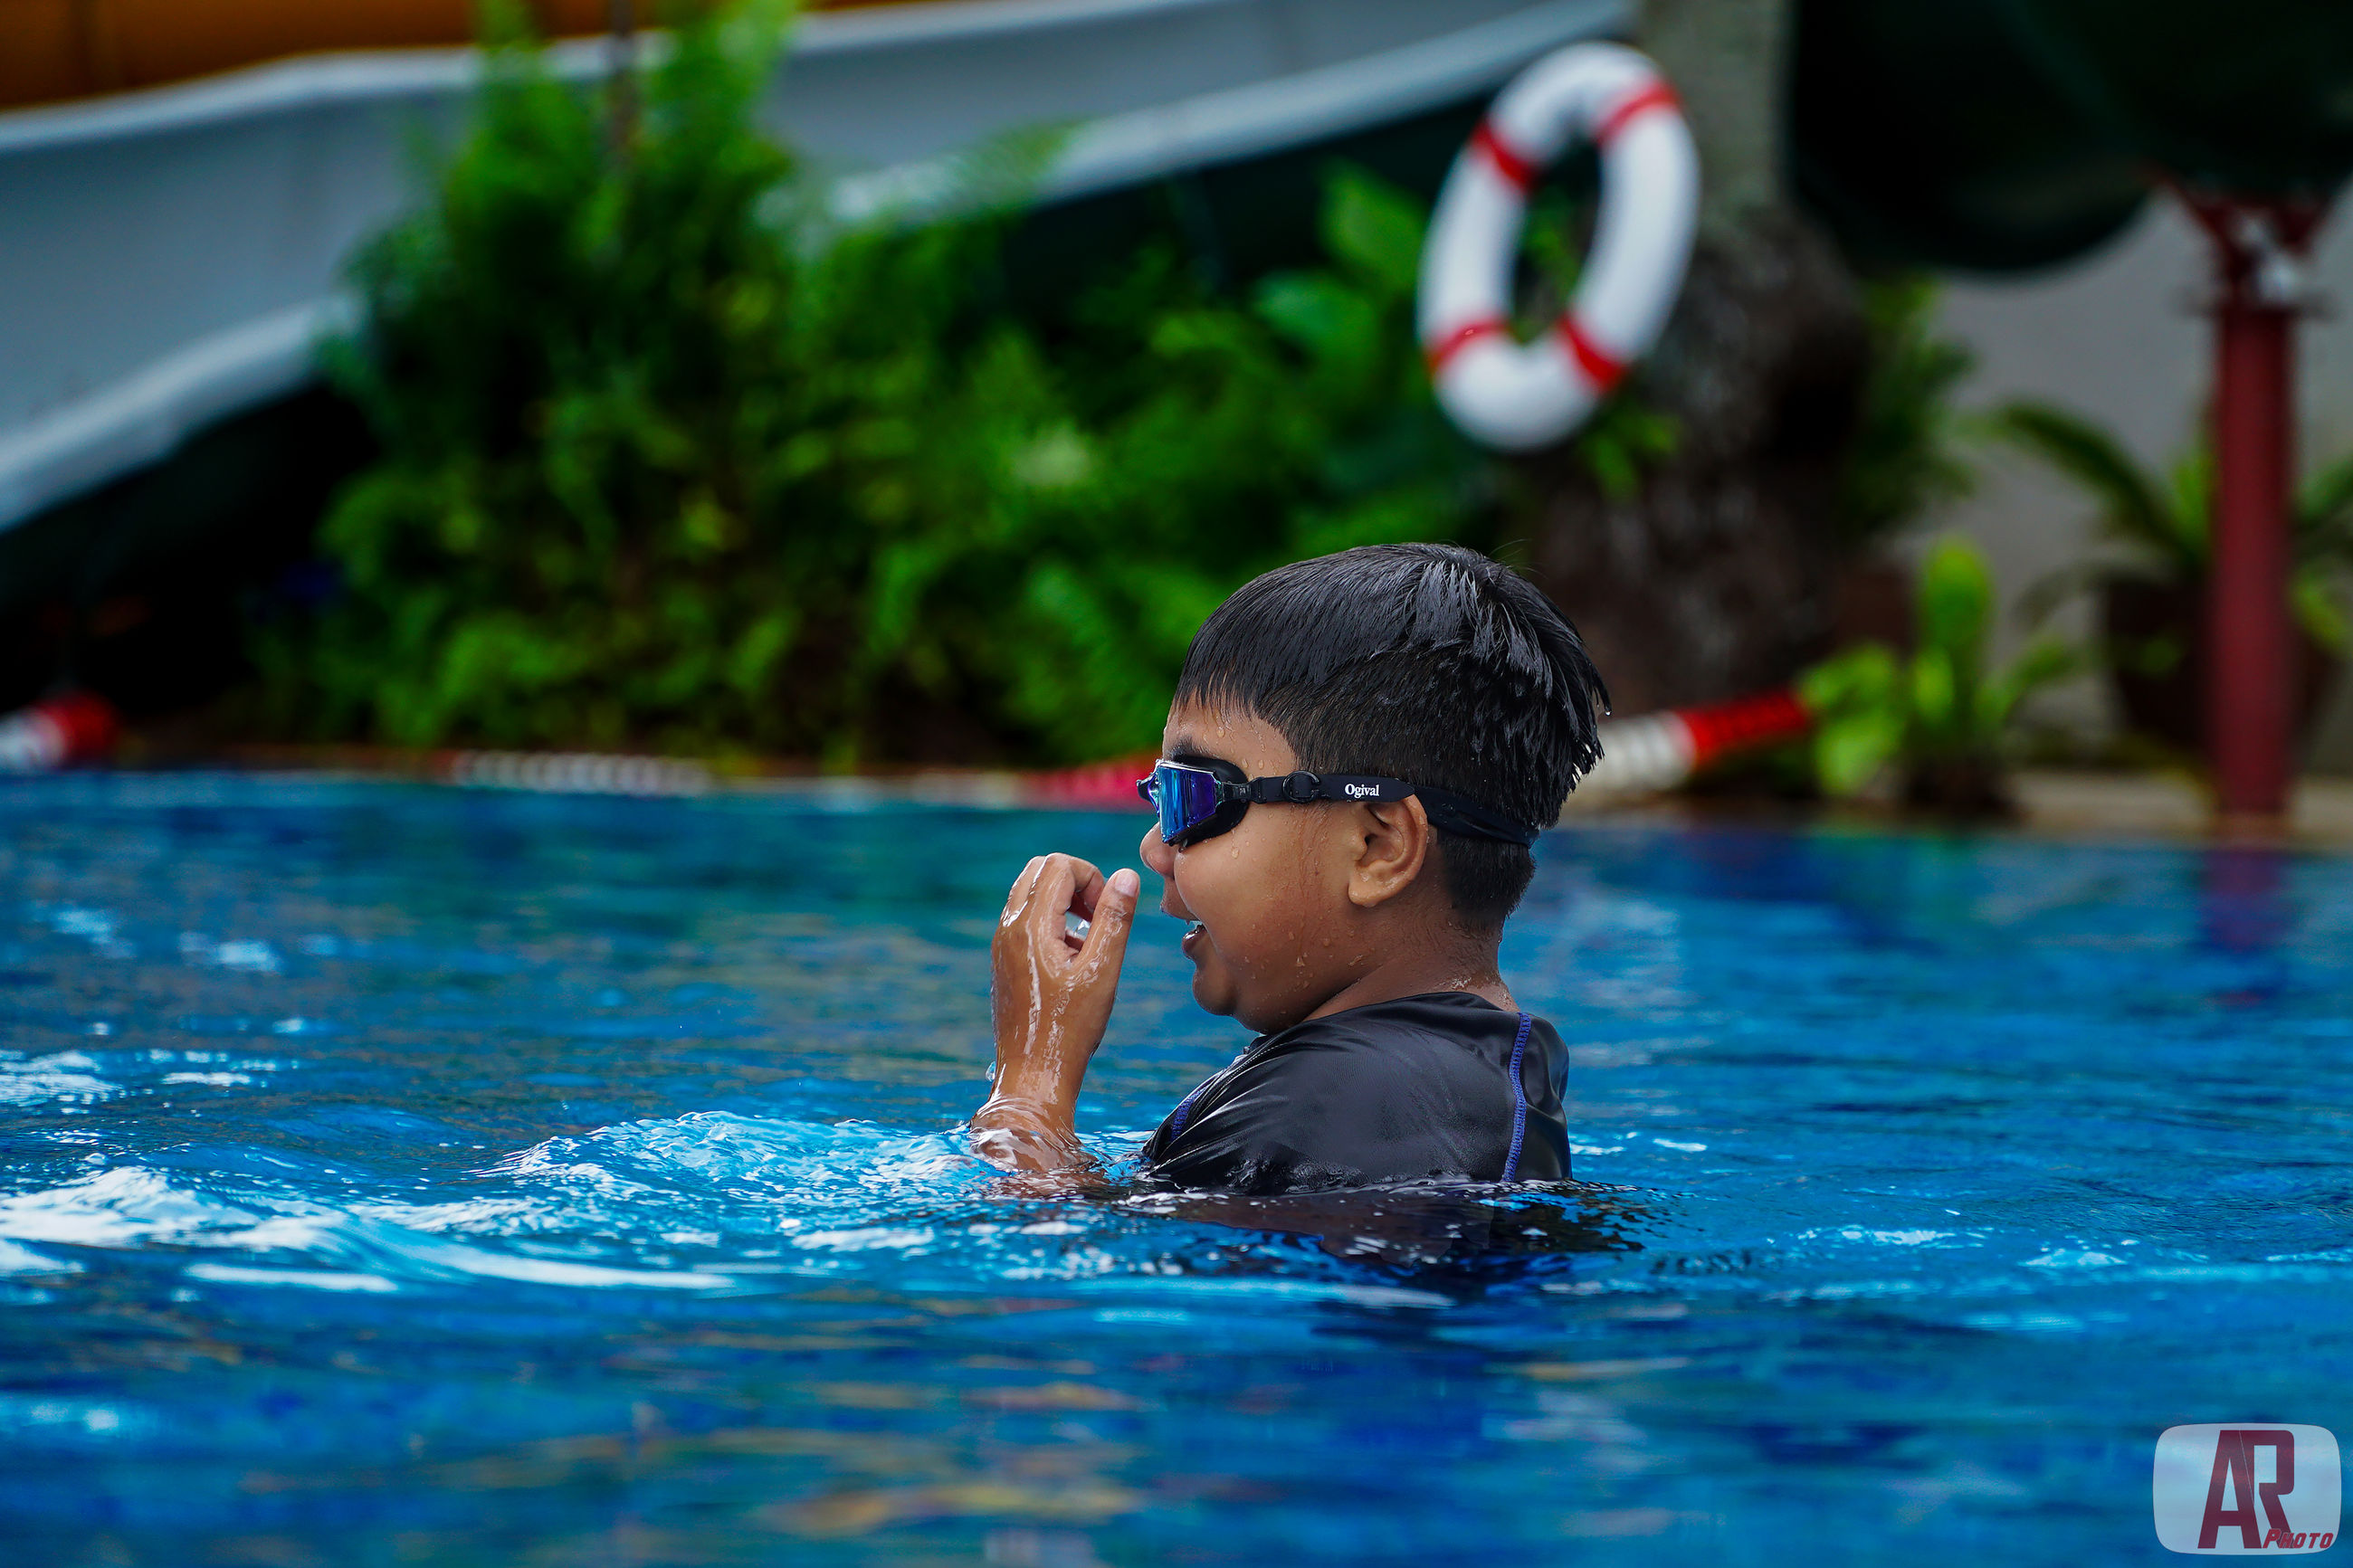 child, childhood, one person, boys, water, real people, males, swimming, swimming pool, pool, men, headshot, lifestyles, portrait, leisure activity, day, innocence, eyewear, outdoors